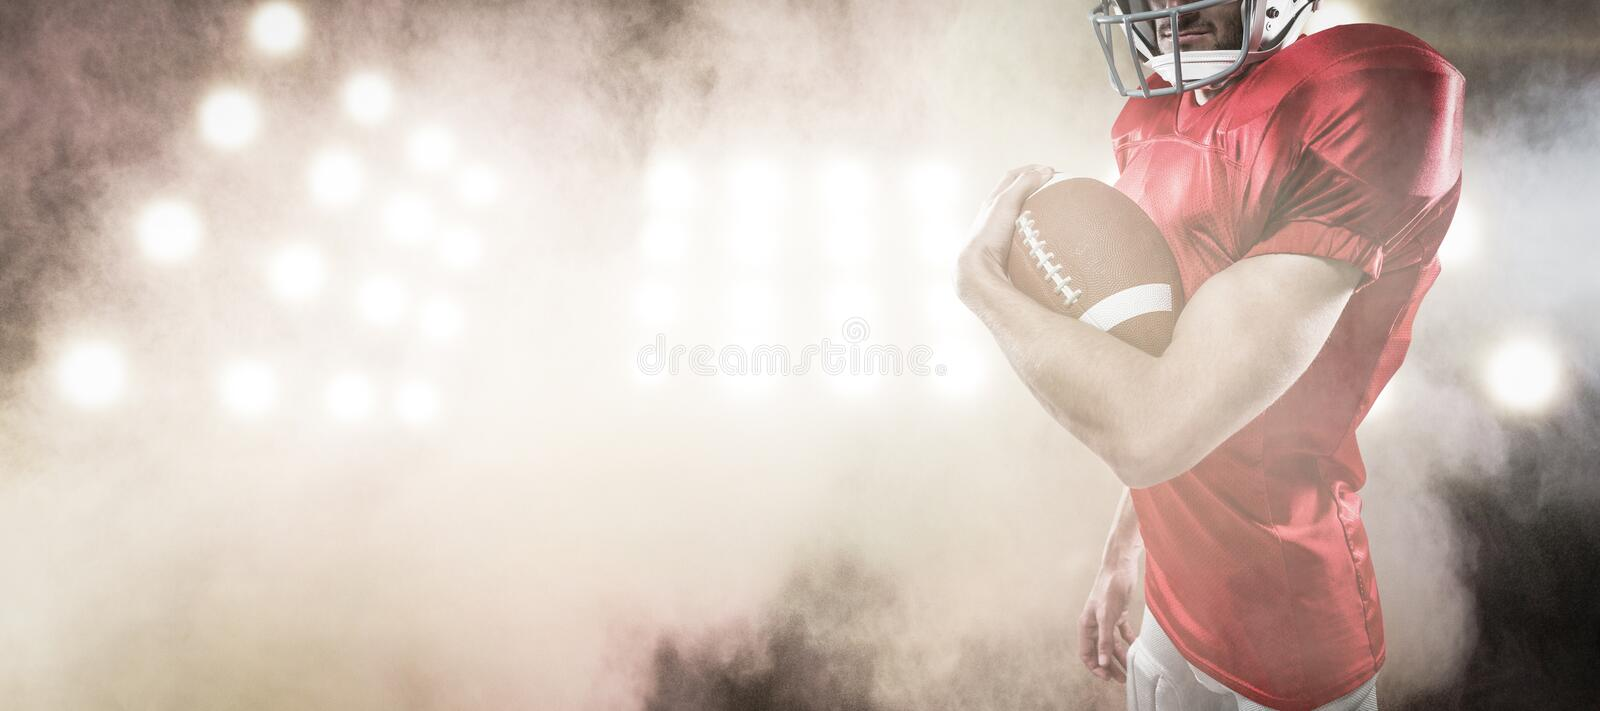 Composite image of portrait of confident american football player in red jersey holding ball royalty free stock photos